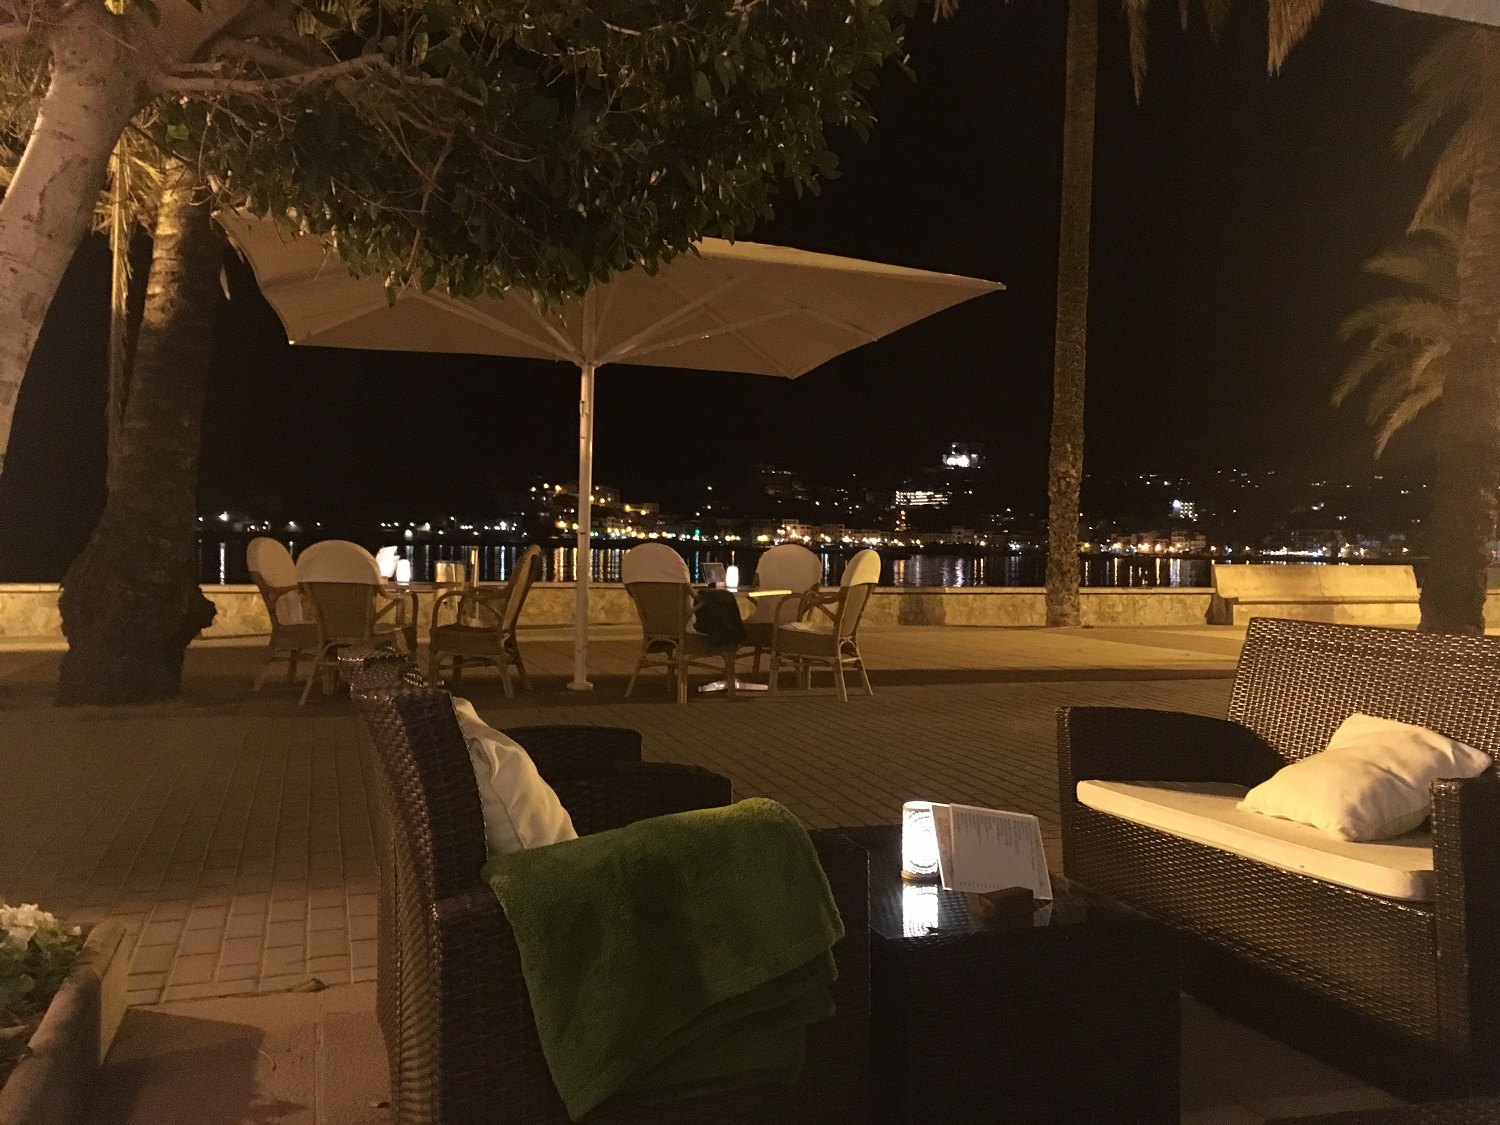 Hotel Marina terrace lounge on the harbor front, Mallorca